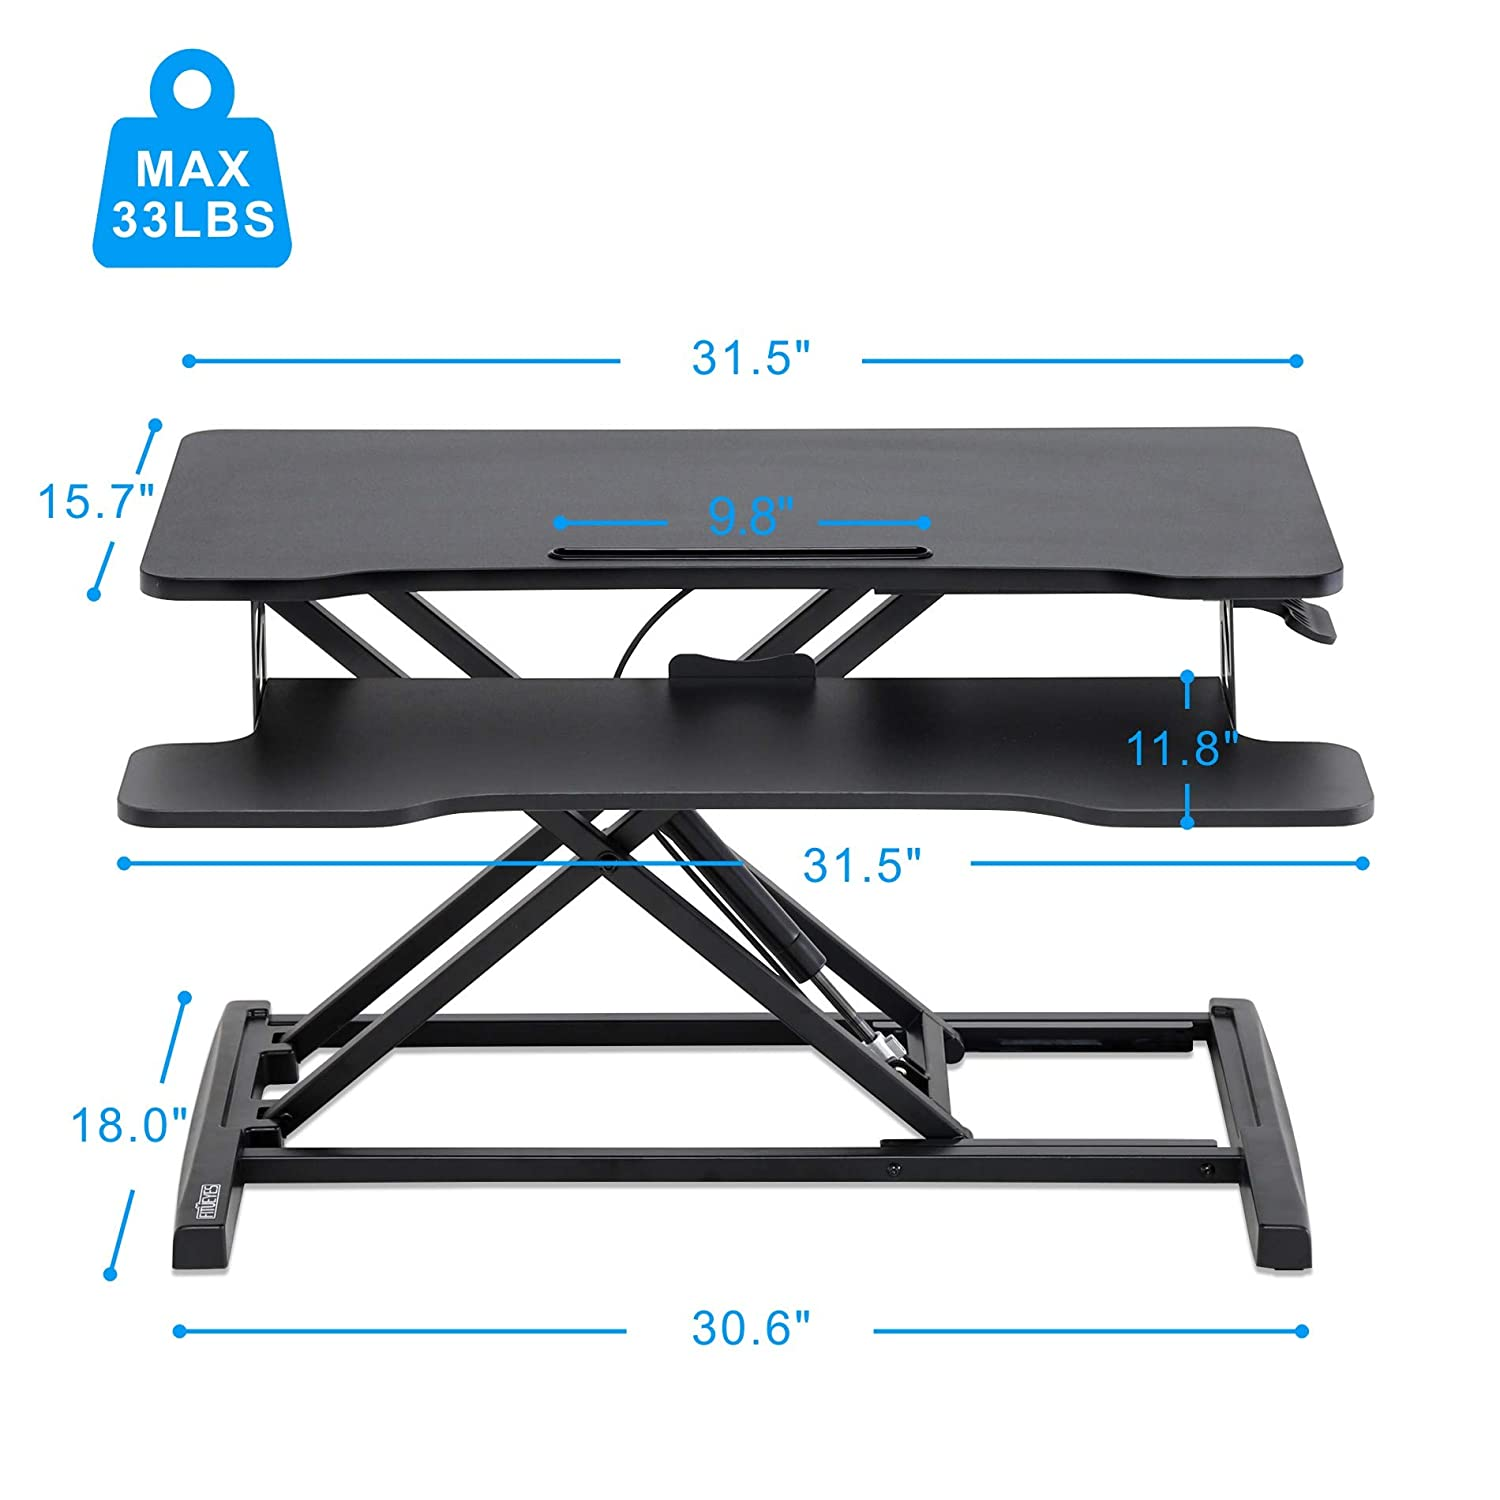 FITUEYES Height Adjustable Standing Desk 32 Wide Sit to Stand Converter Stand Up Desk Tabletop Workstation for Dual Monitor Riser SD308001WB